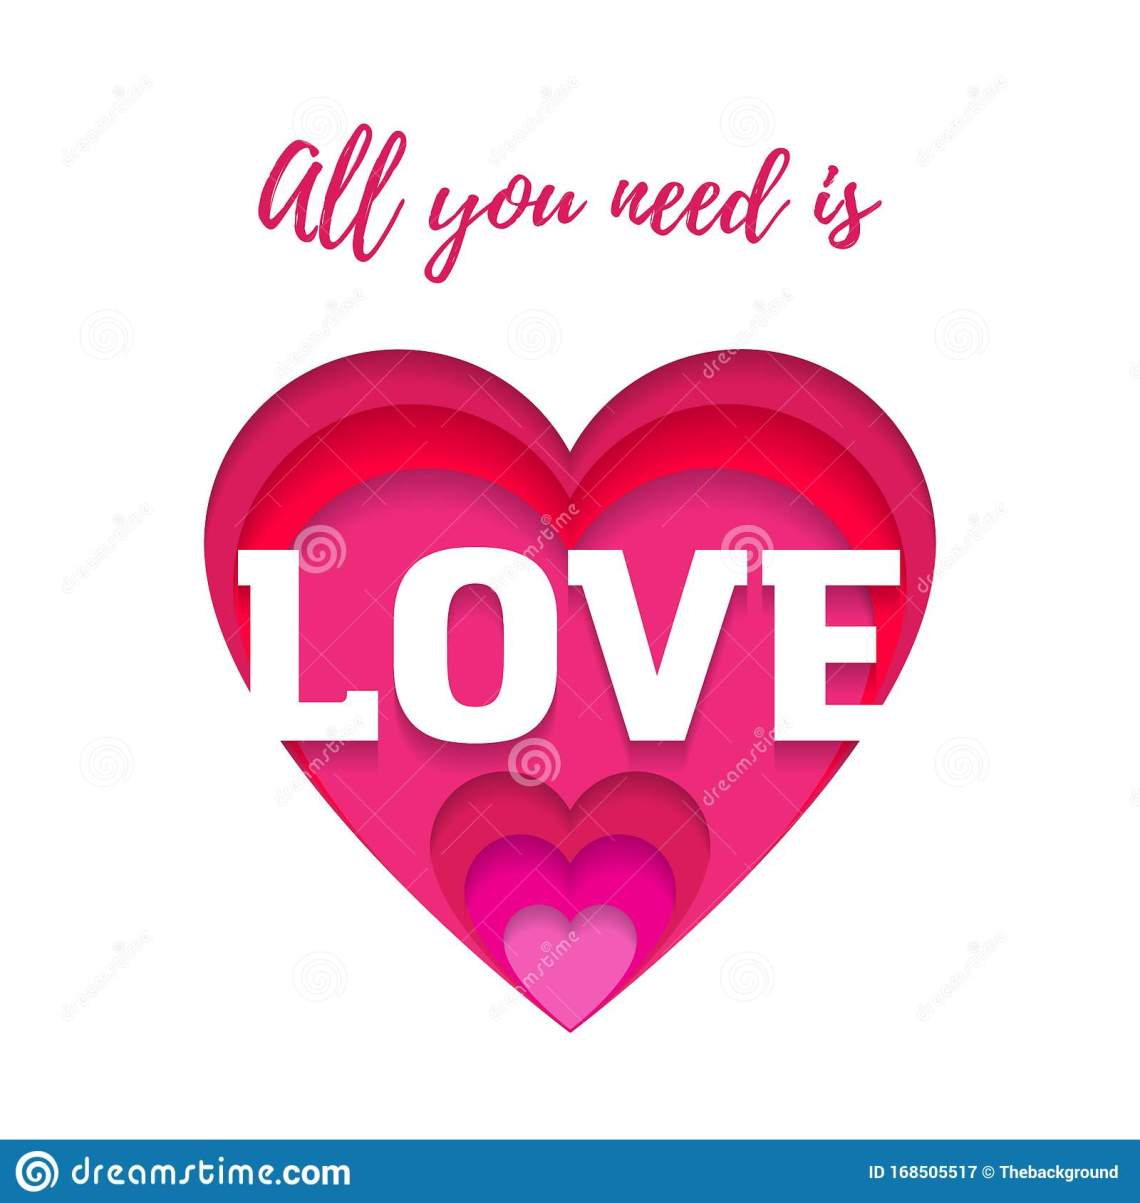 Download All You Need Is Love, Quote With Heart. Paper Cut Art ...